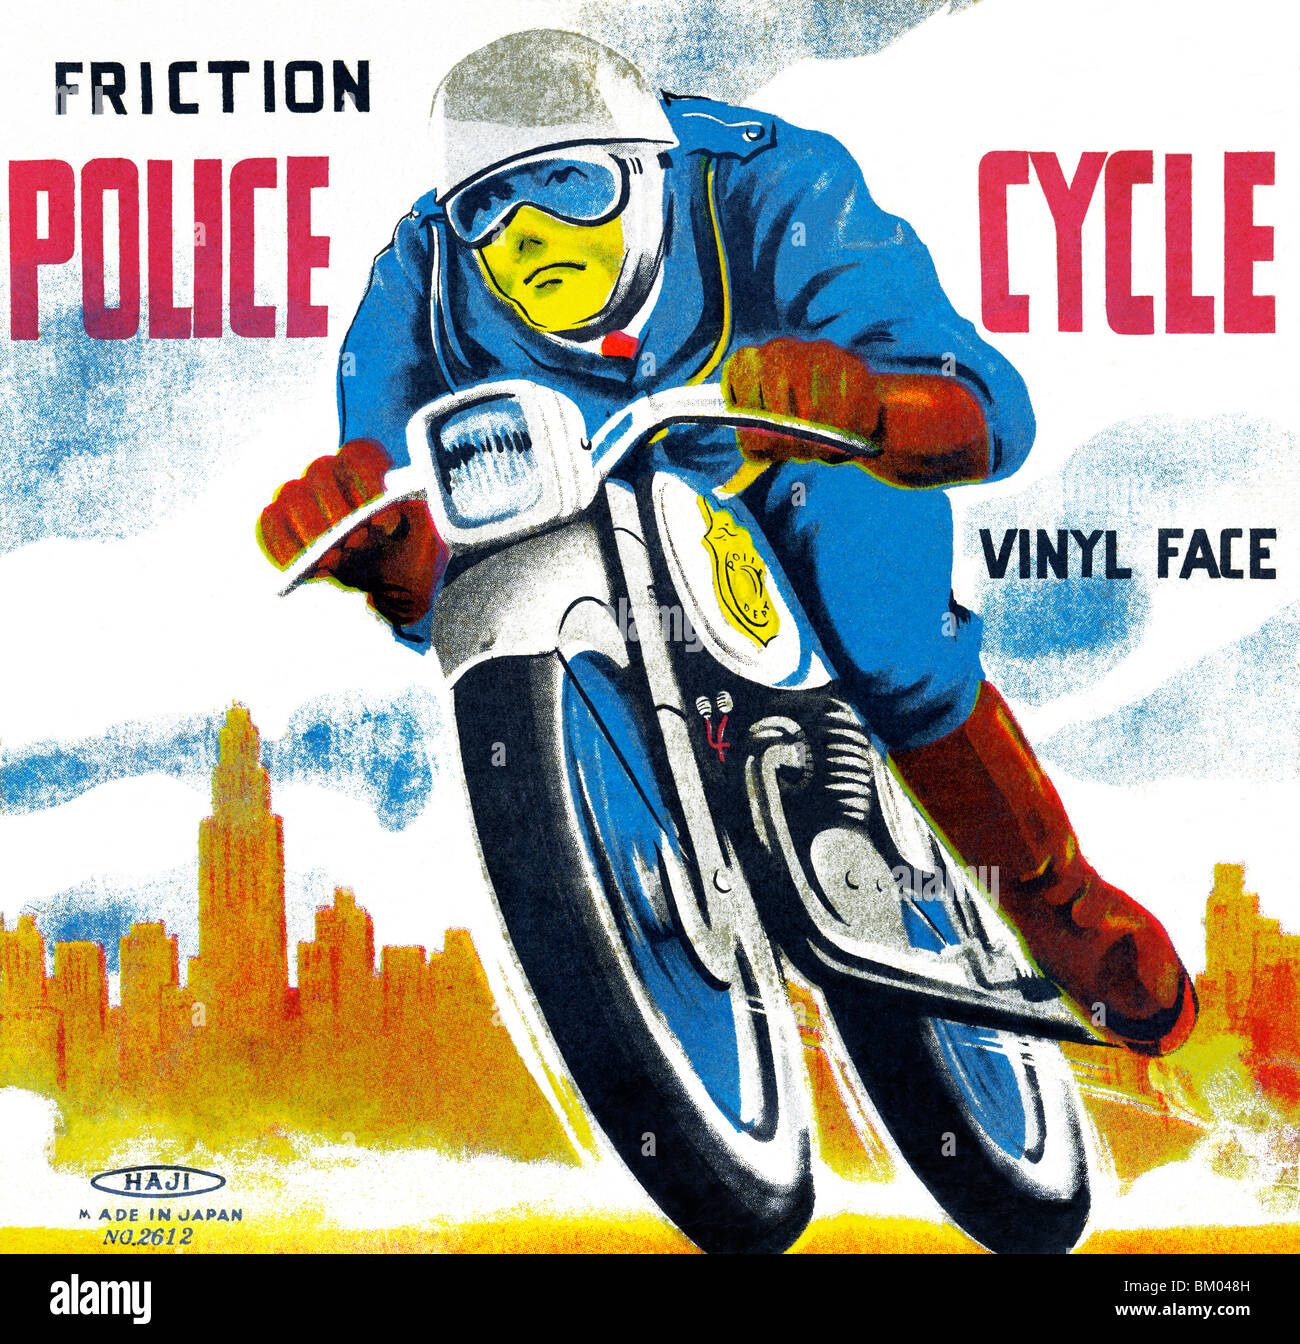 Friction Police Cycle - Stock Image